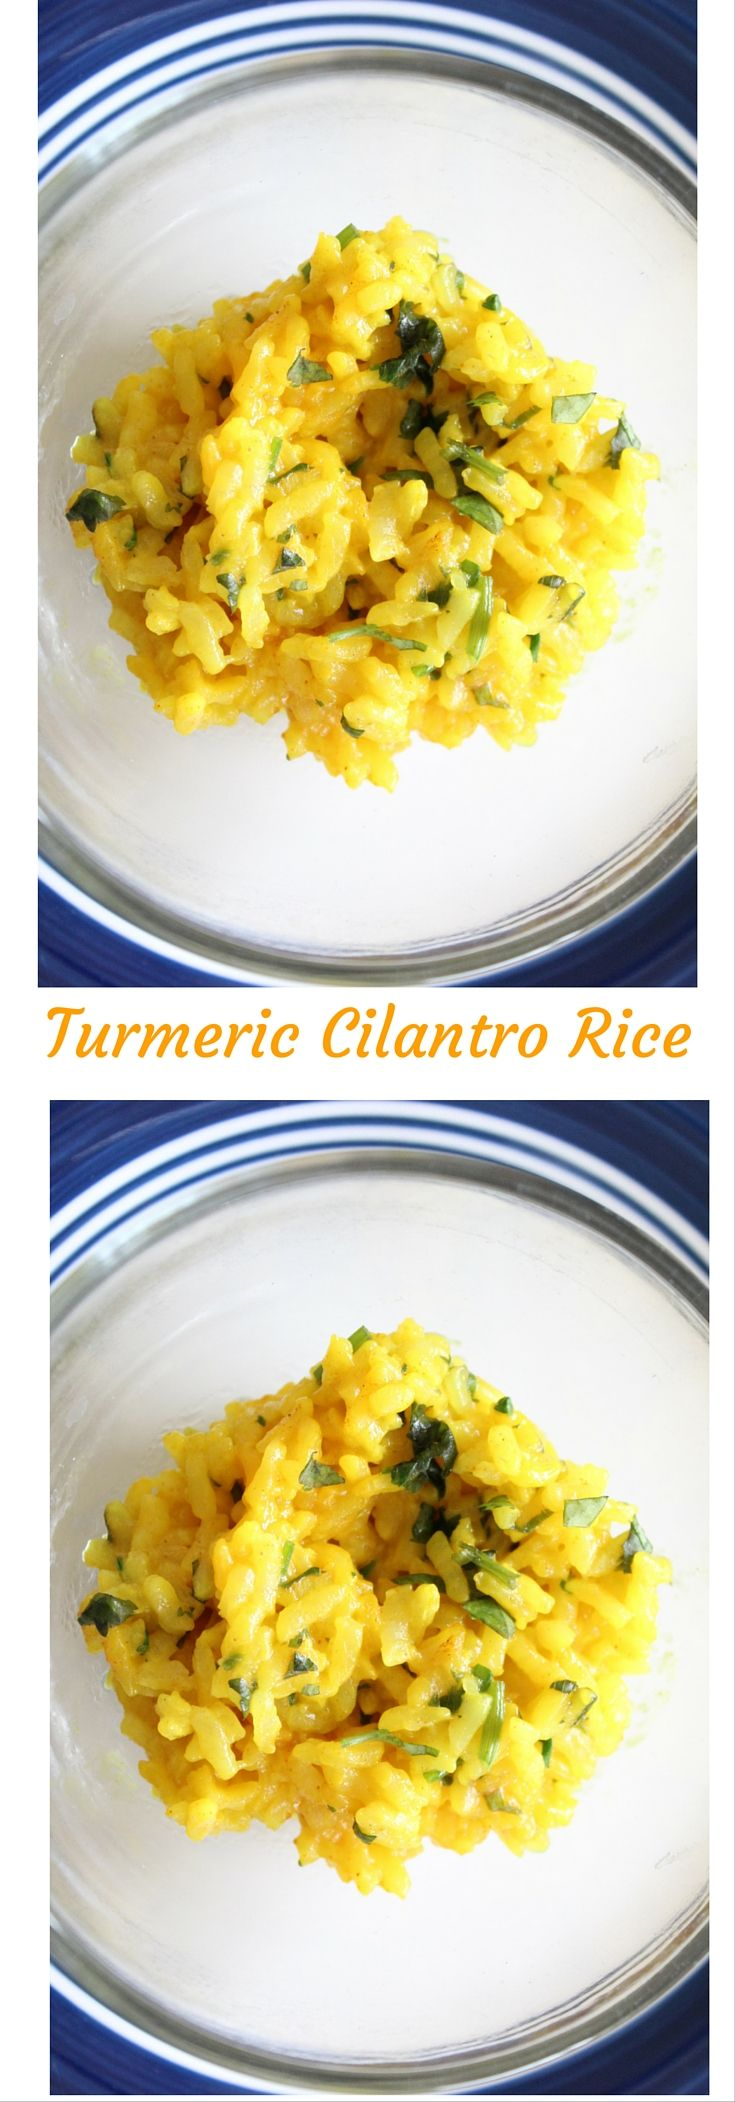 Spice up your rice with this cilantro rice topped with turmeric spice. Click here for the recipe or pin to save for later.